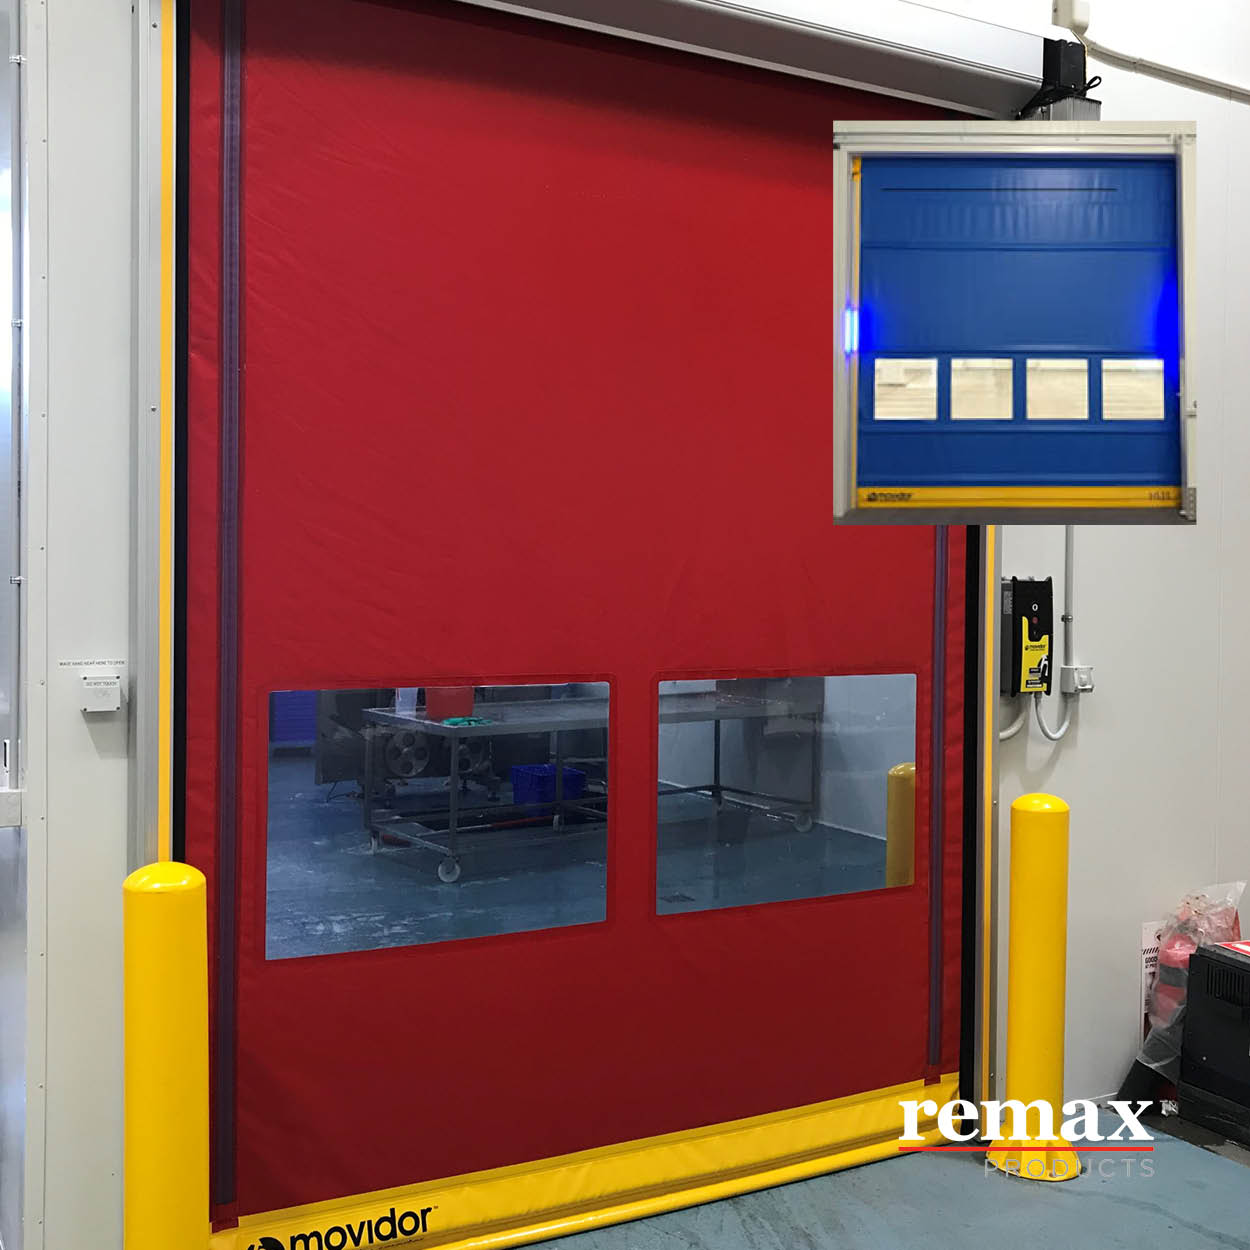 Rapid Doors in the event of electrical power failure